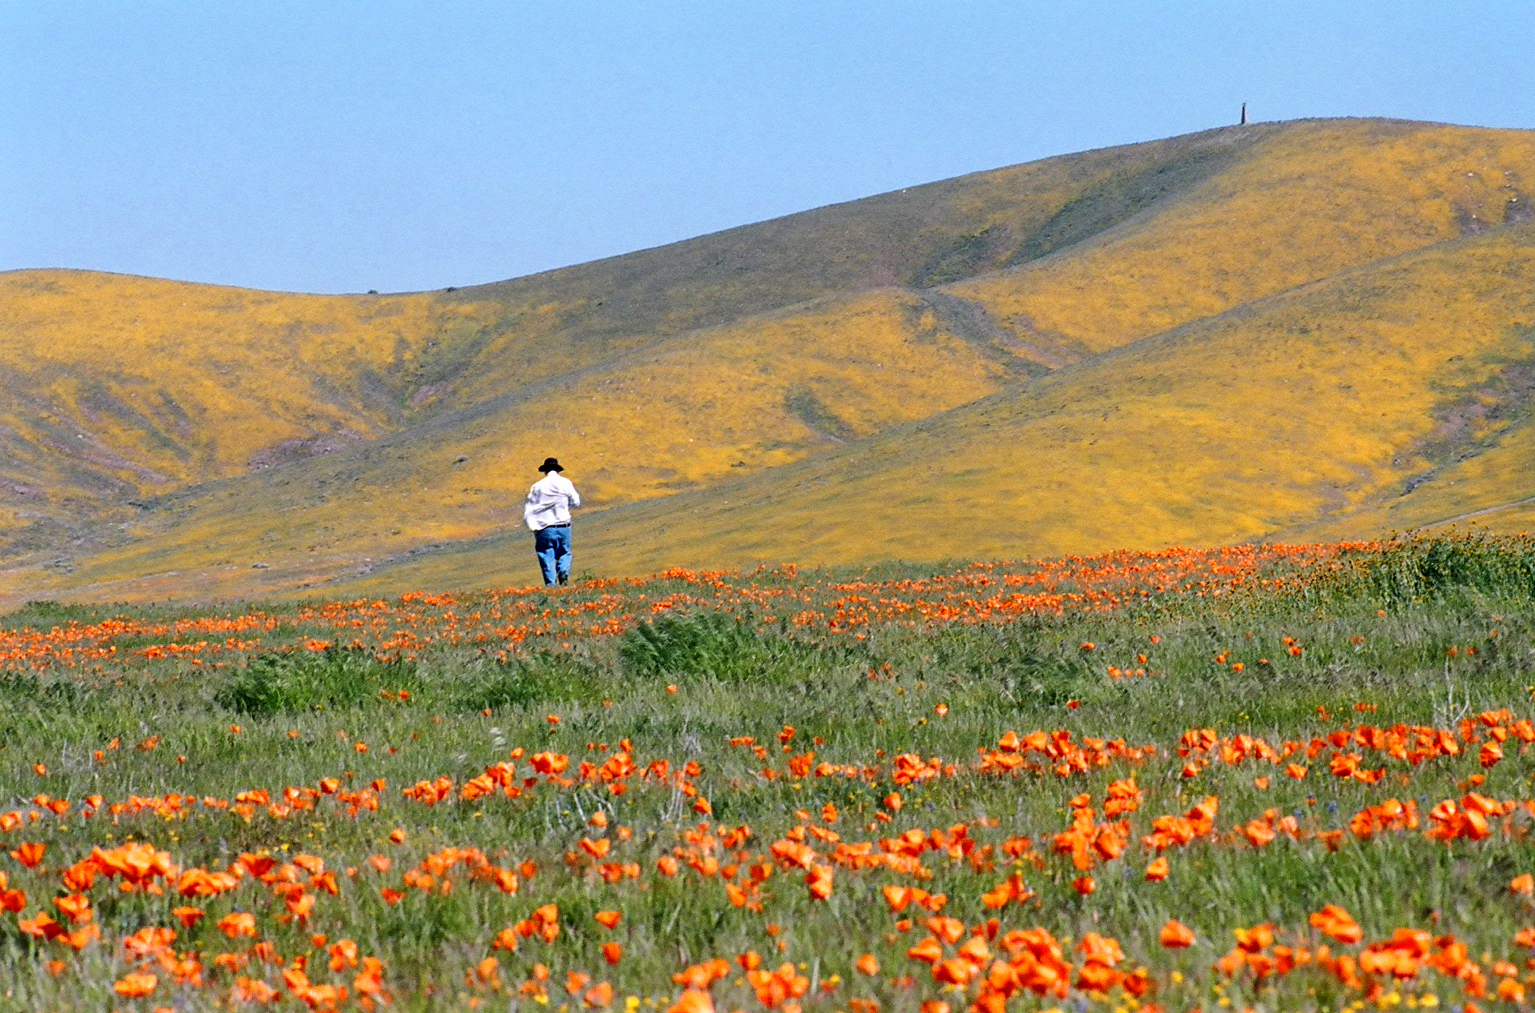 California Is About To Explode With A Spectacular Wildflower Display